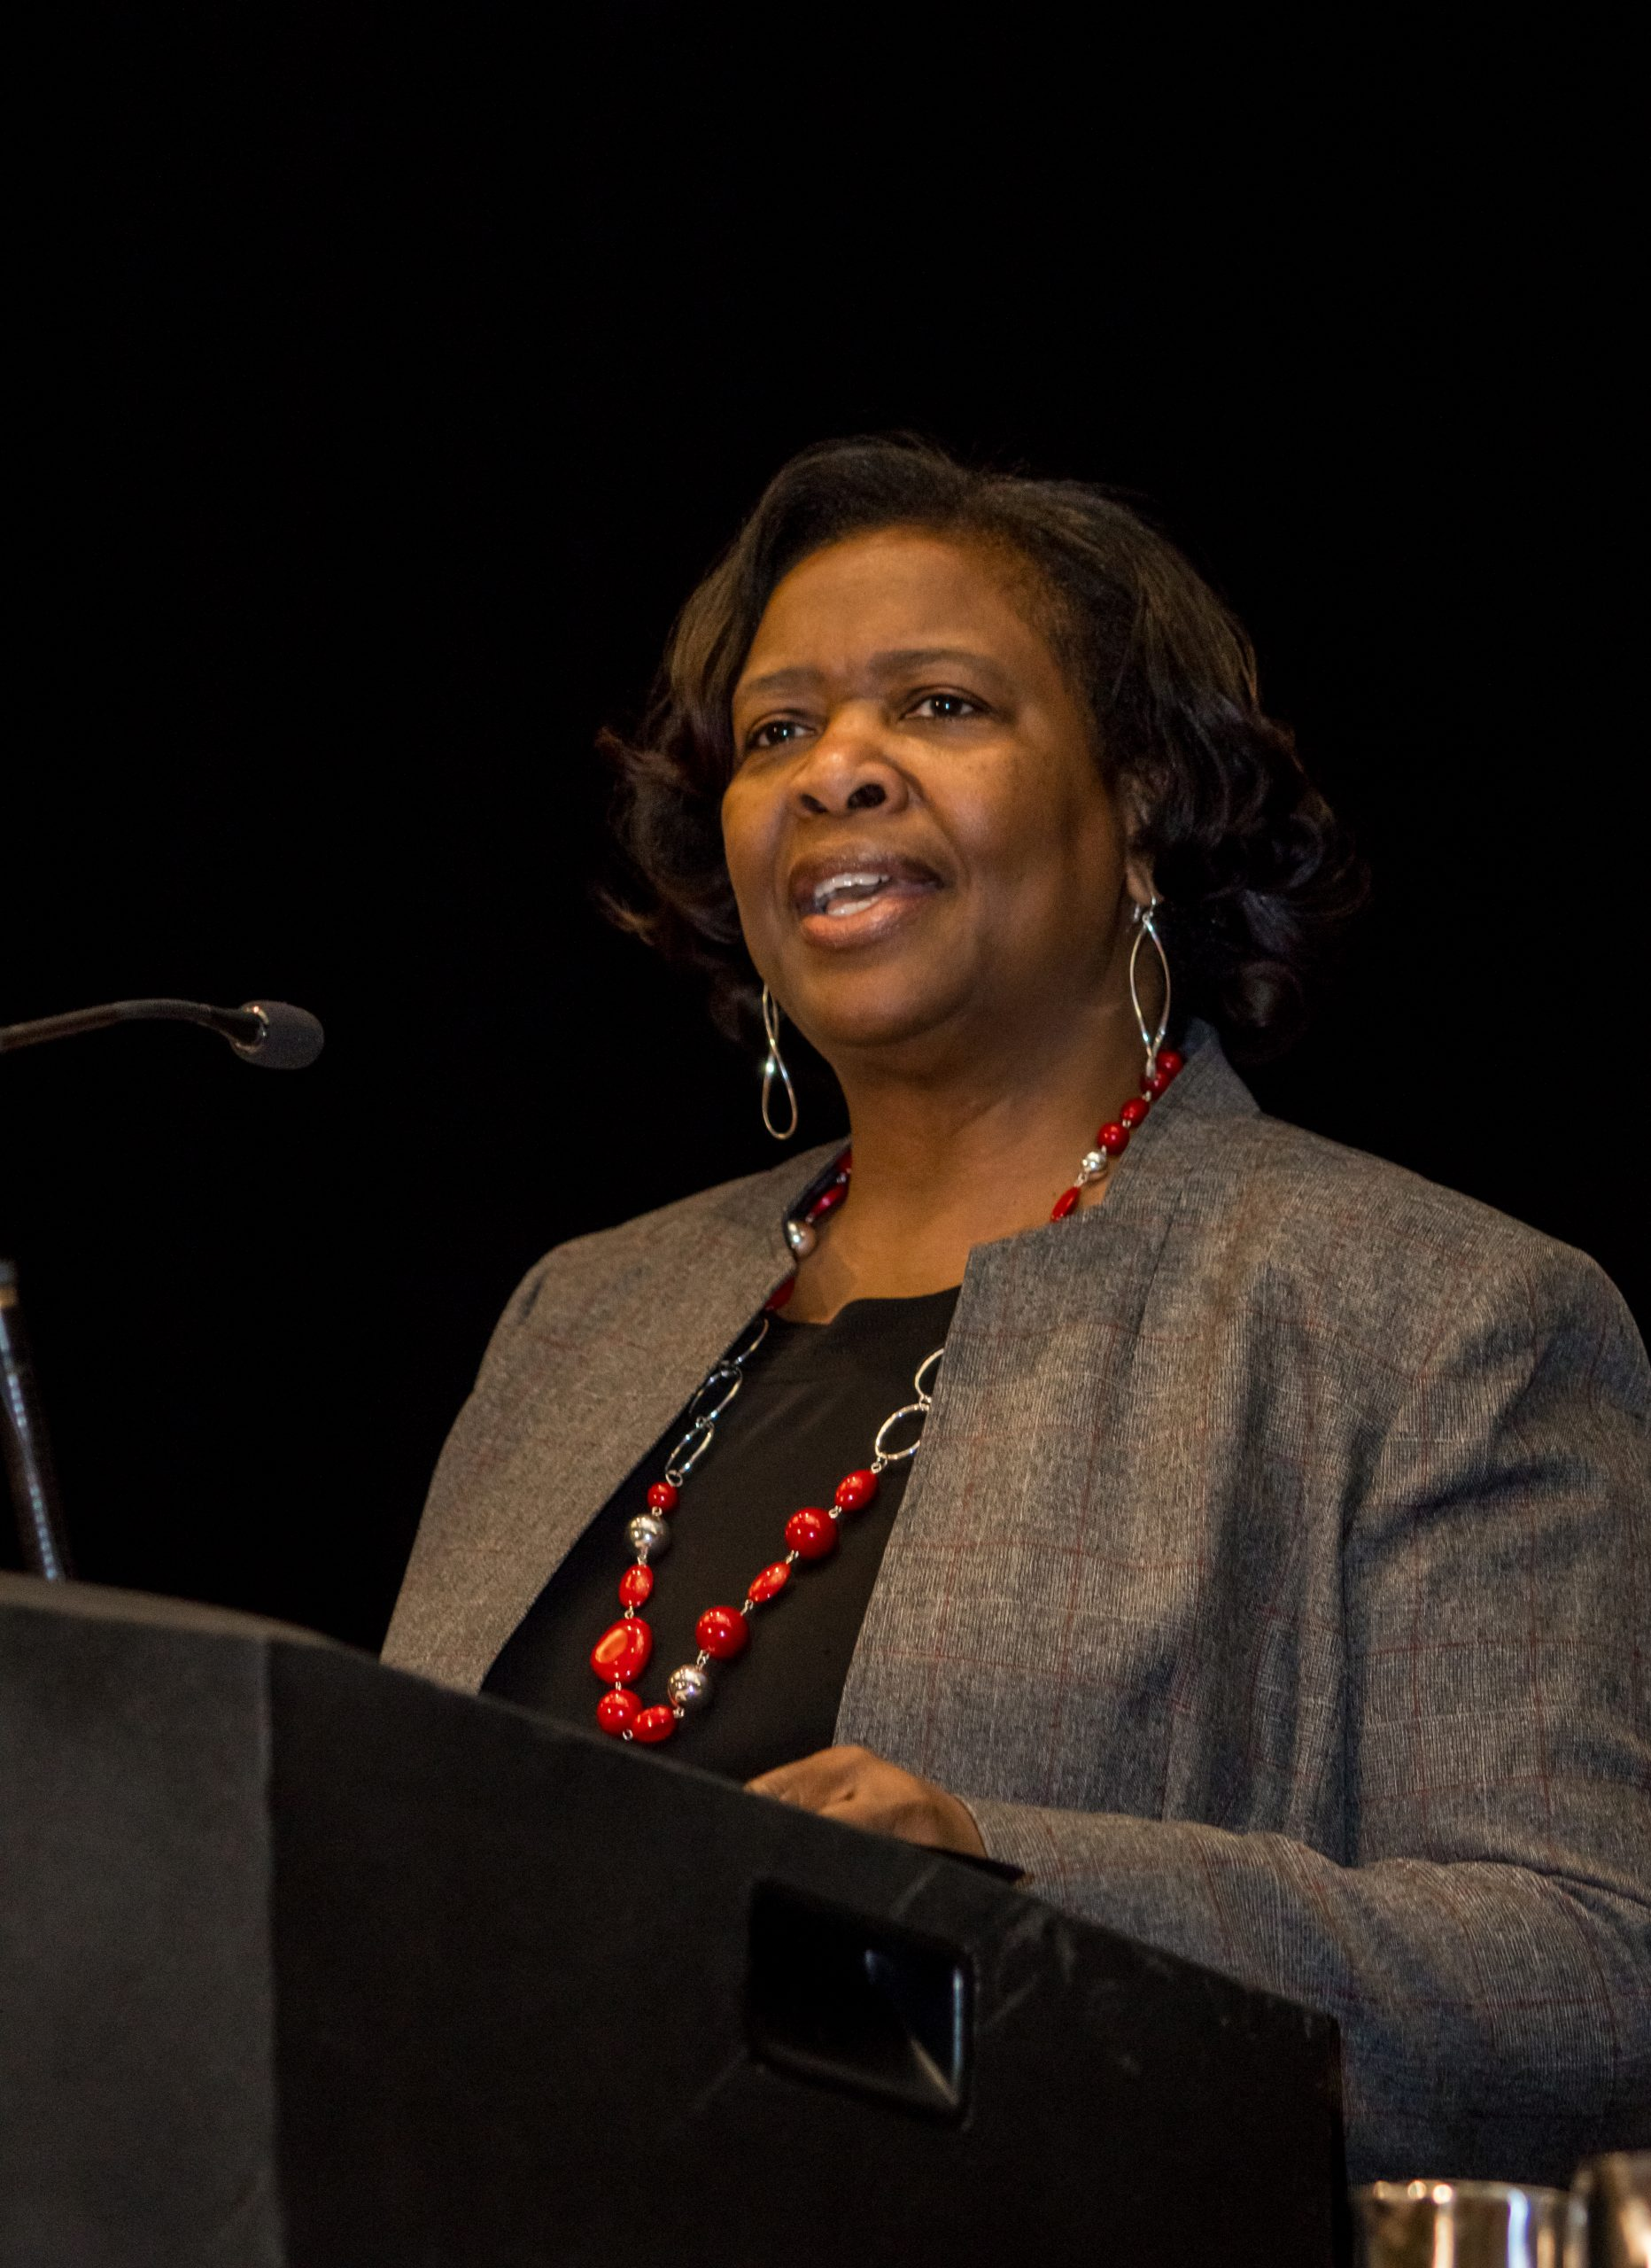 State Superintendent of Education Carolyn Stanford Taylor speaks at podium.